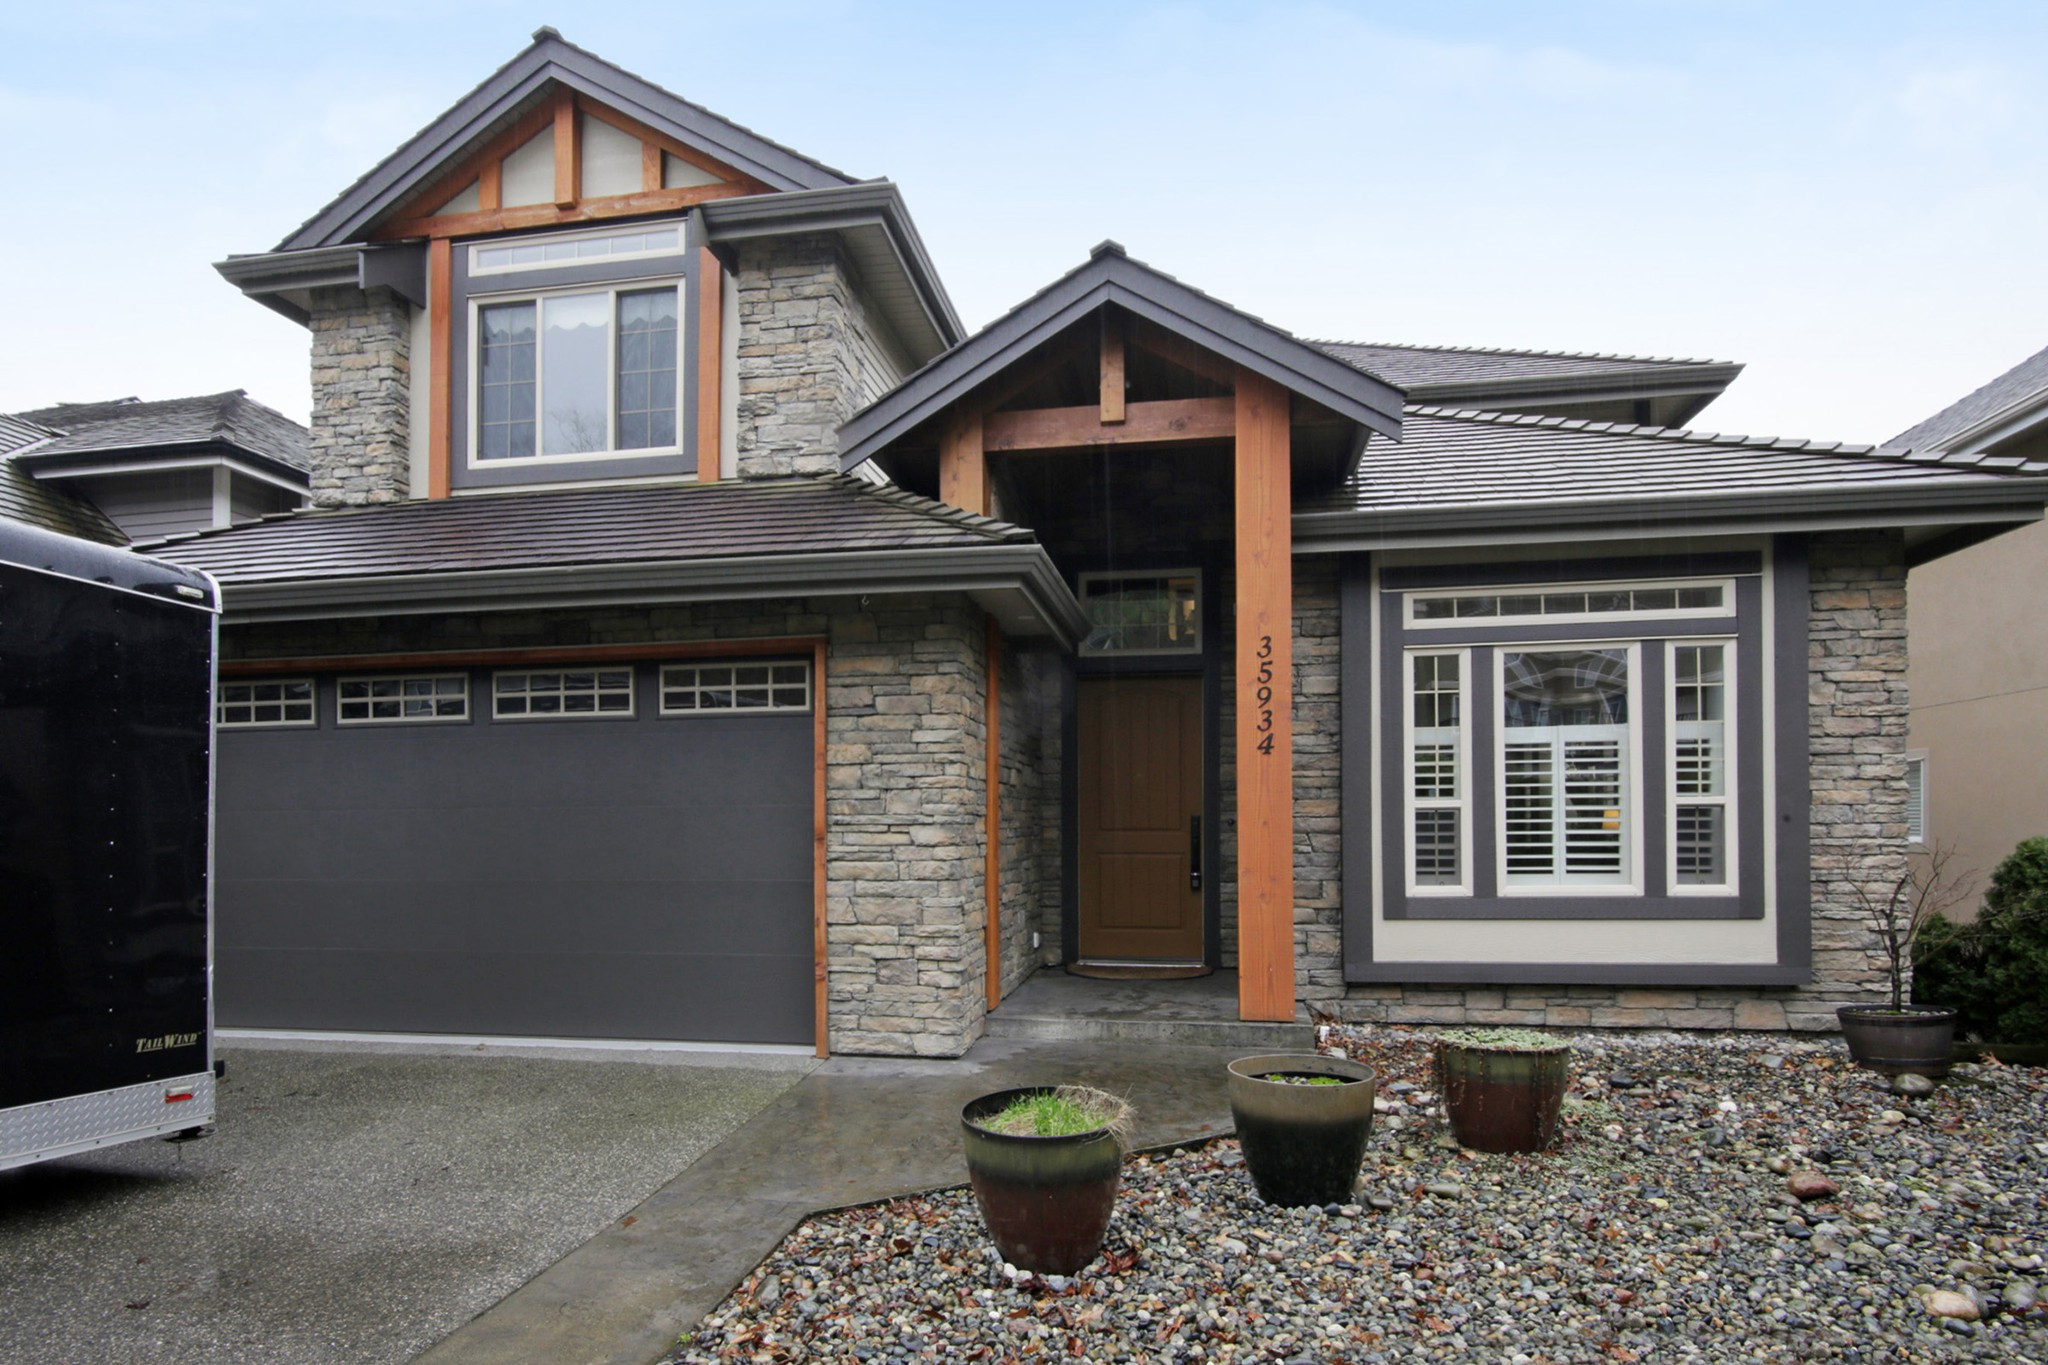 Main Photo: 35934 REGAL Parkway in Abbotsford: Abbotsford East House for sale : MLS® # R2235544